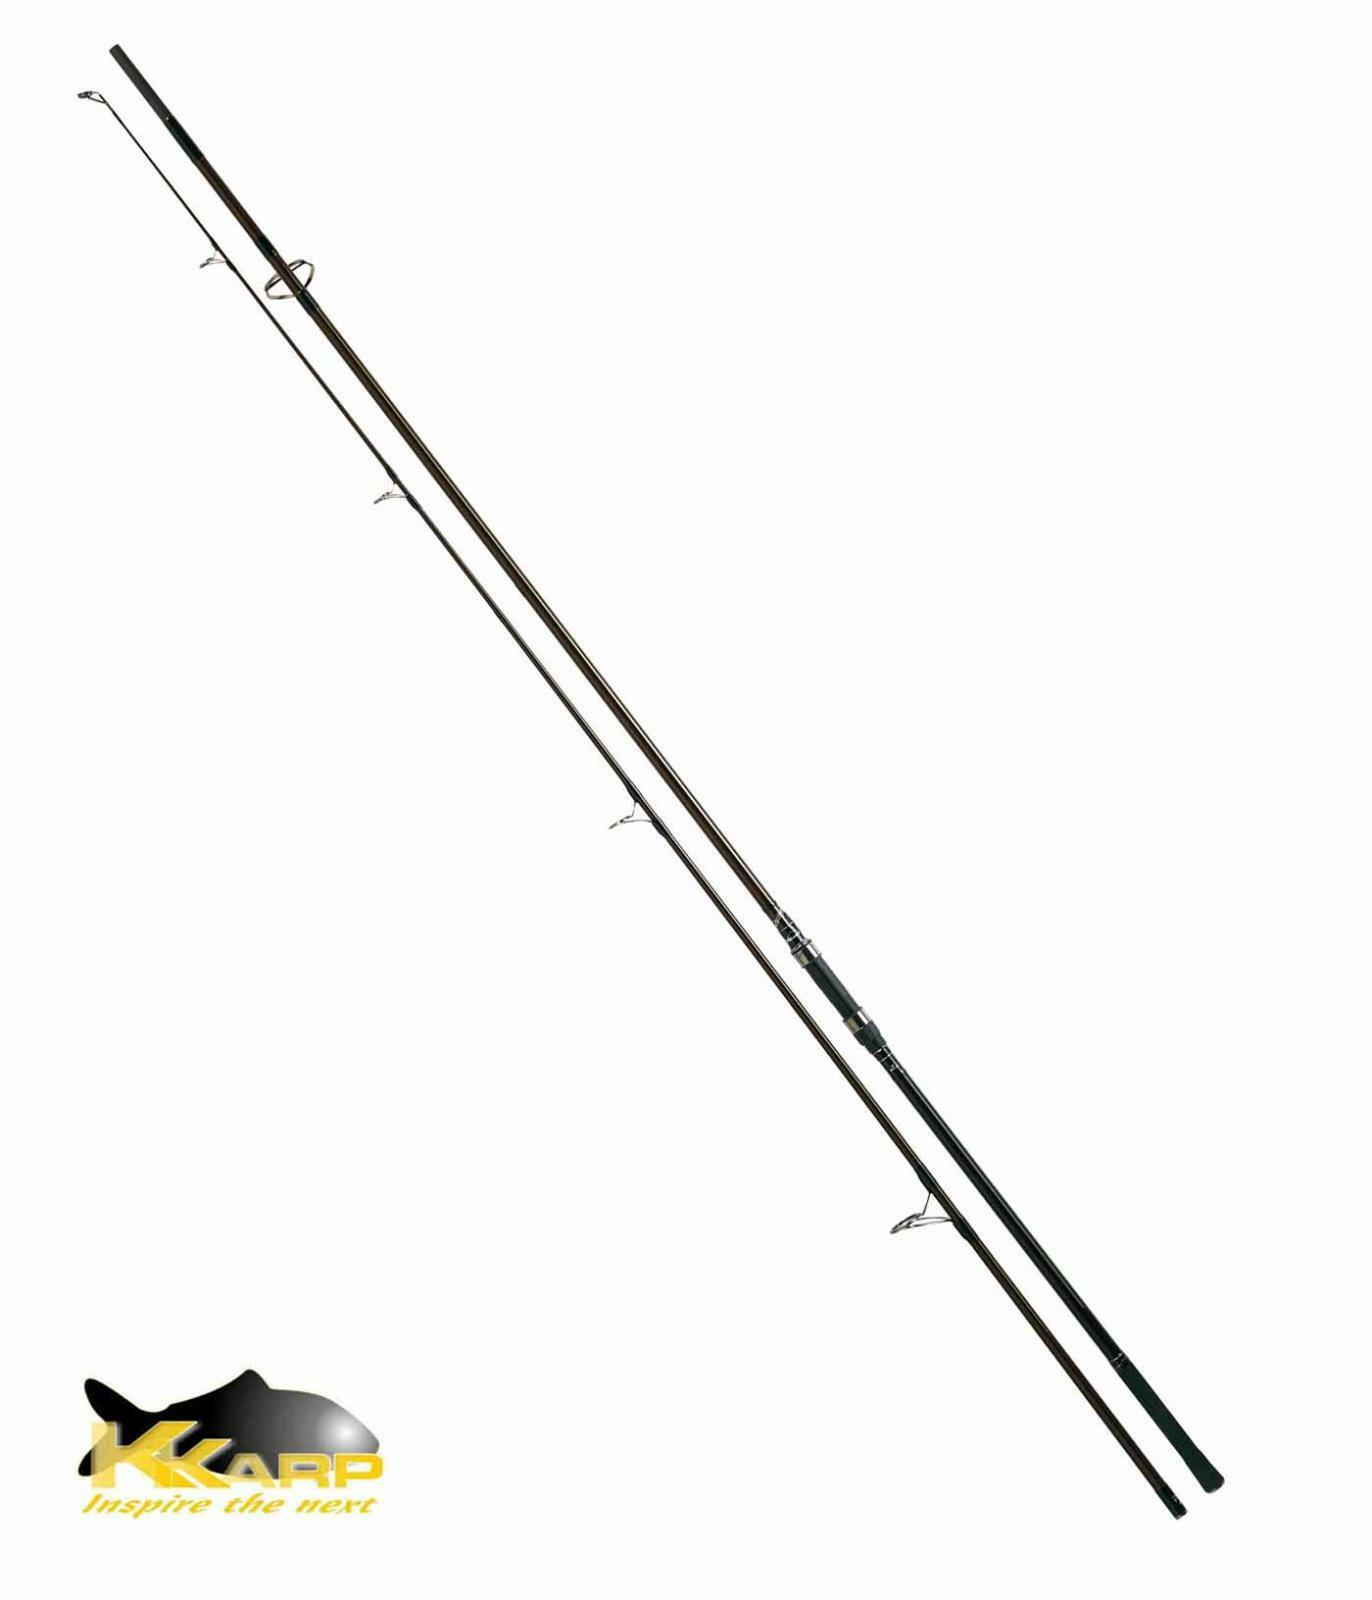 15894390 Canna K-Karp Schicksal 390 cm 03.50 Lbs Angeln Long Range Carpfishing